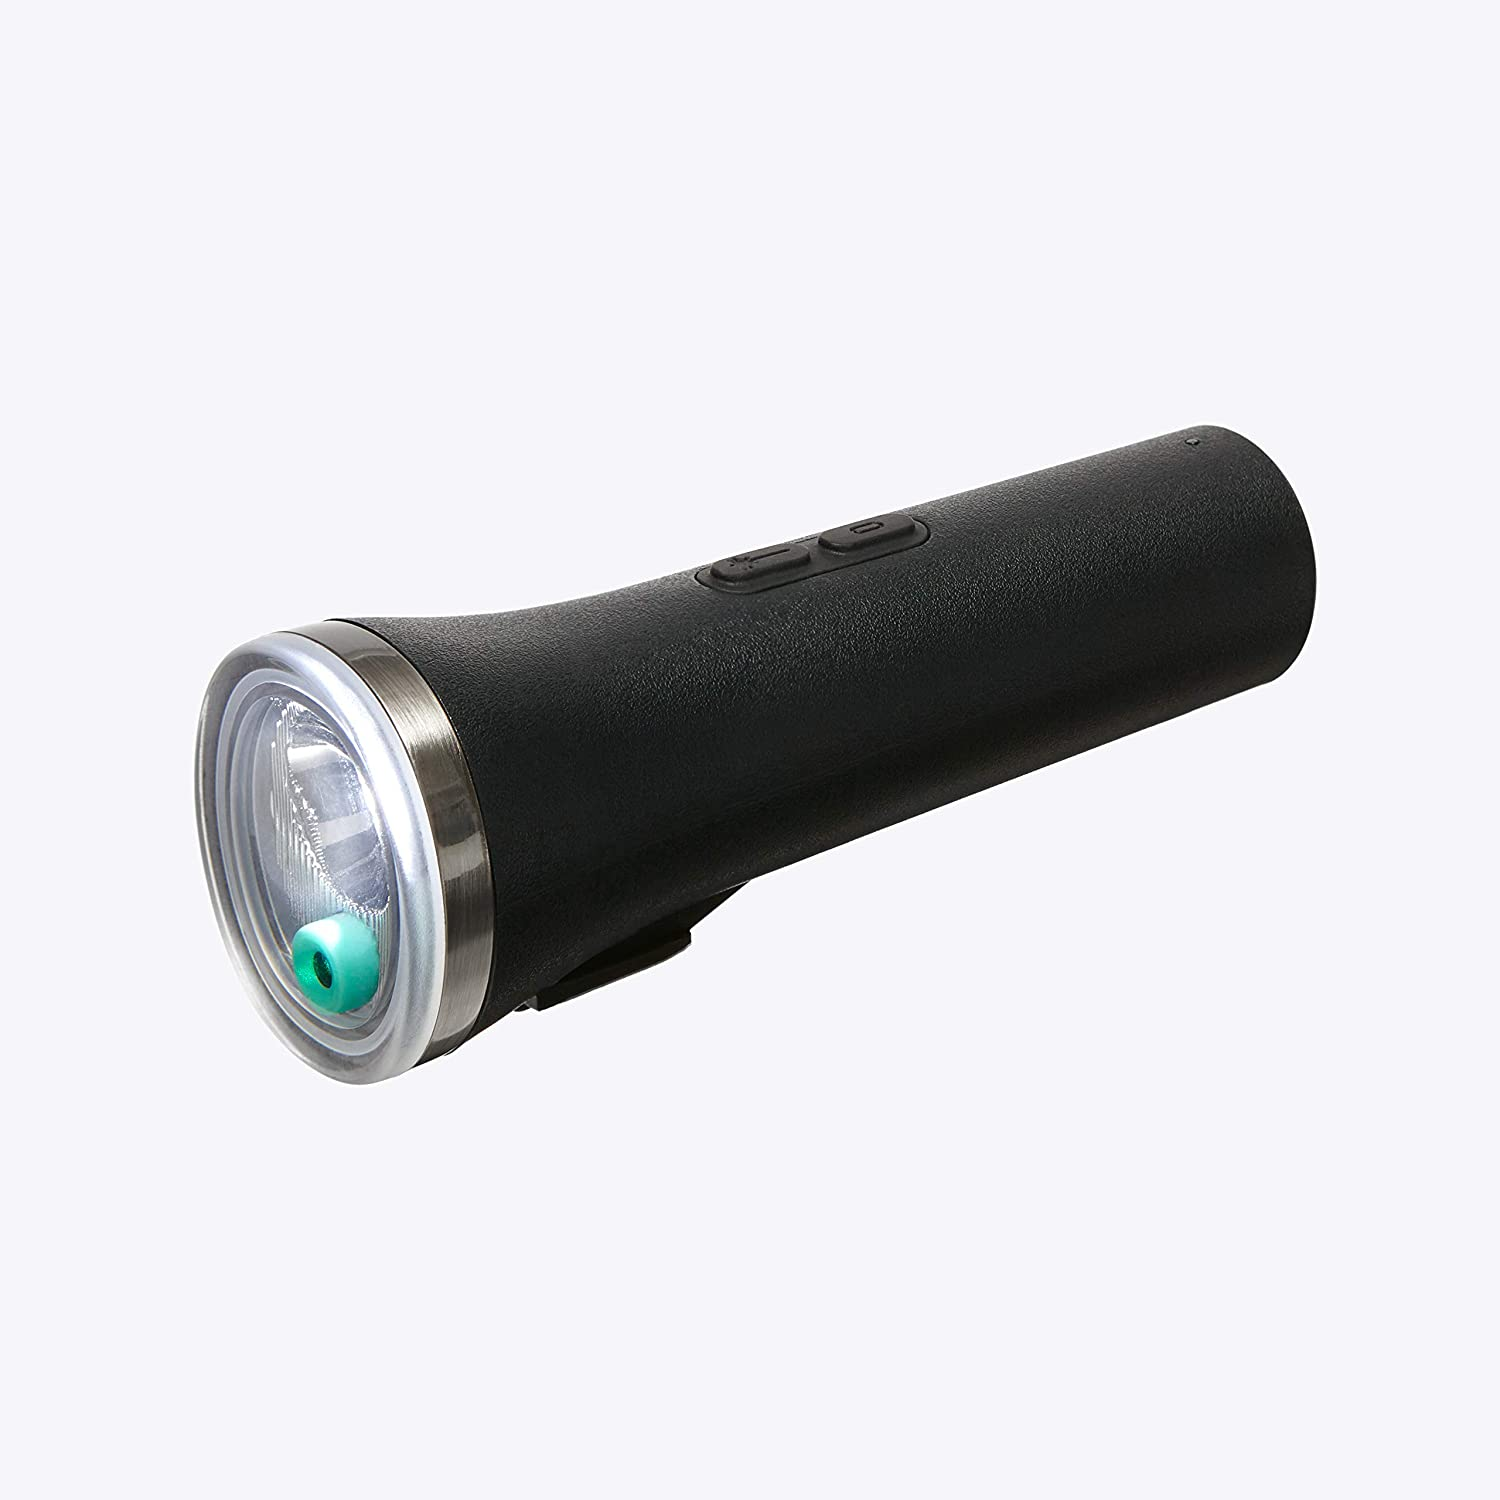 BERYL Laserlight Core Safety Bicycle Light - Green Laser Bicycle Image - 400 Lumen White Light - Day Flash - Up to 41 Hour on a Single Charge - Tool Free Bracket